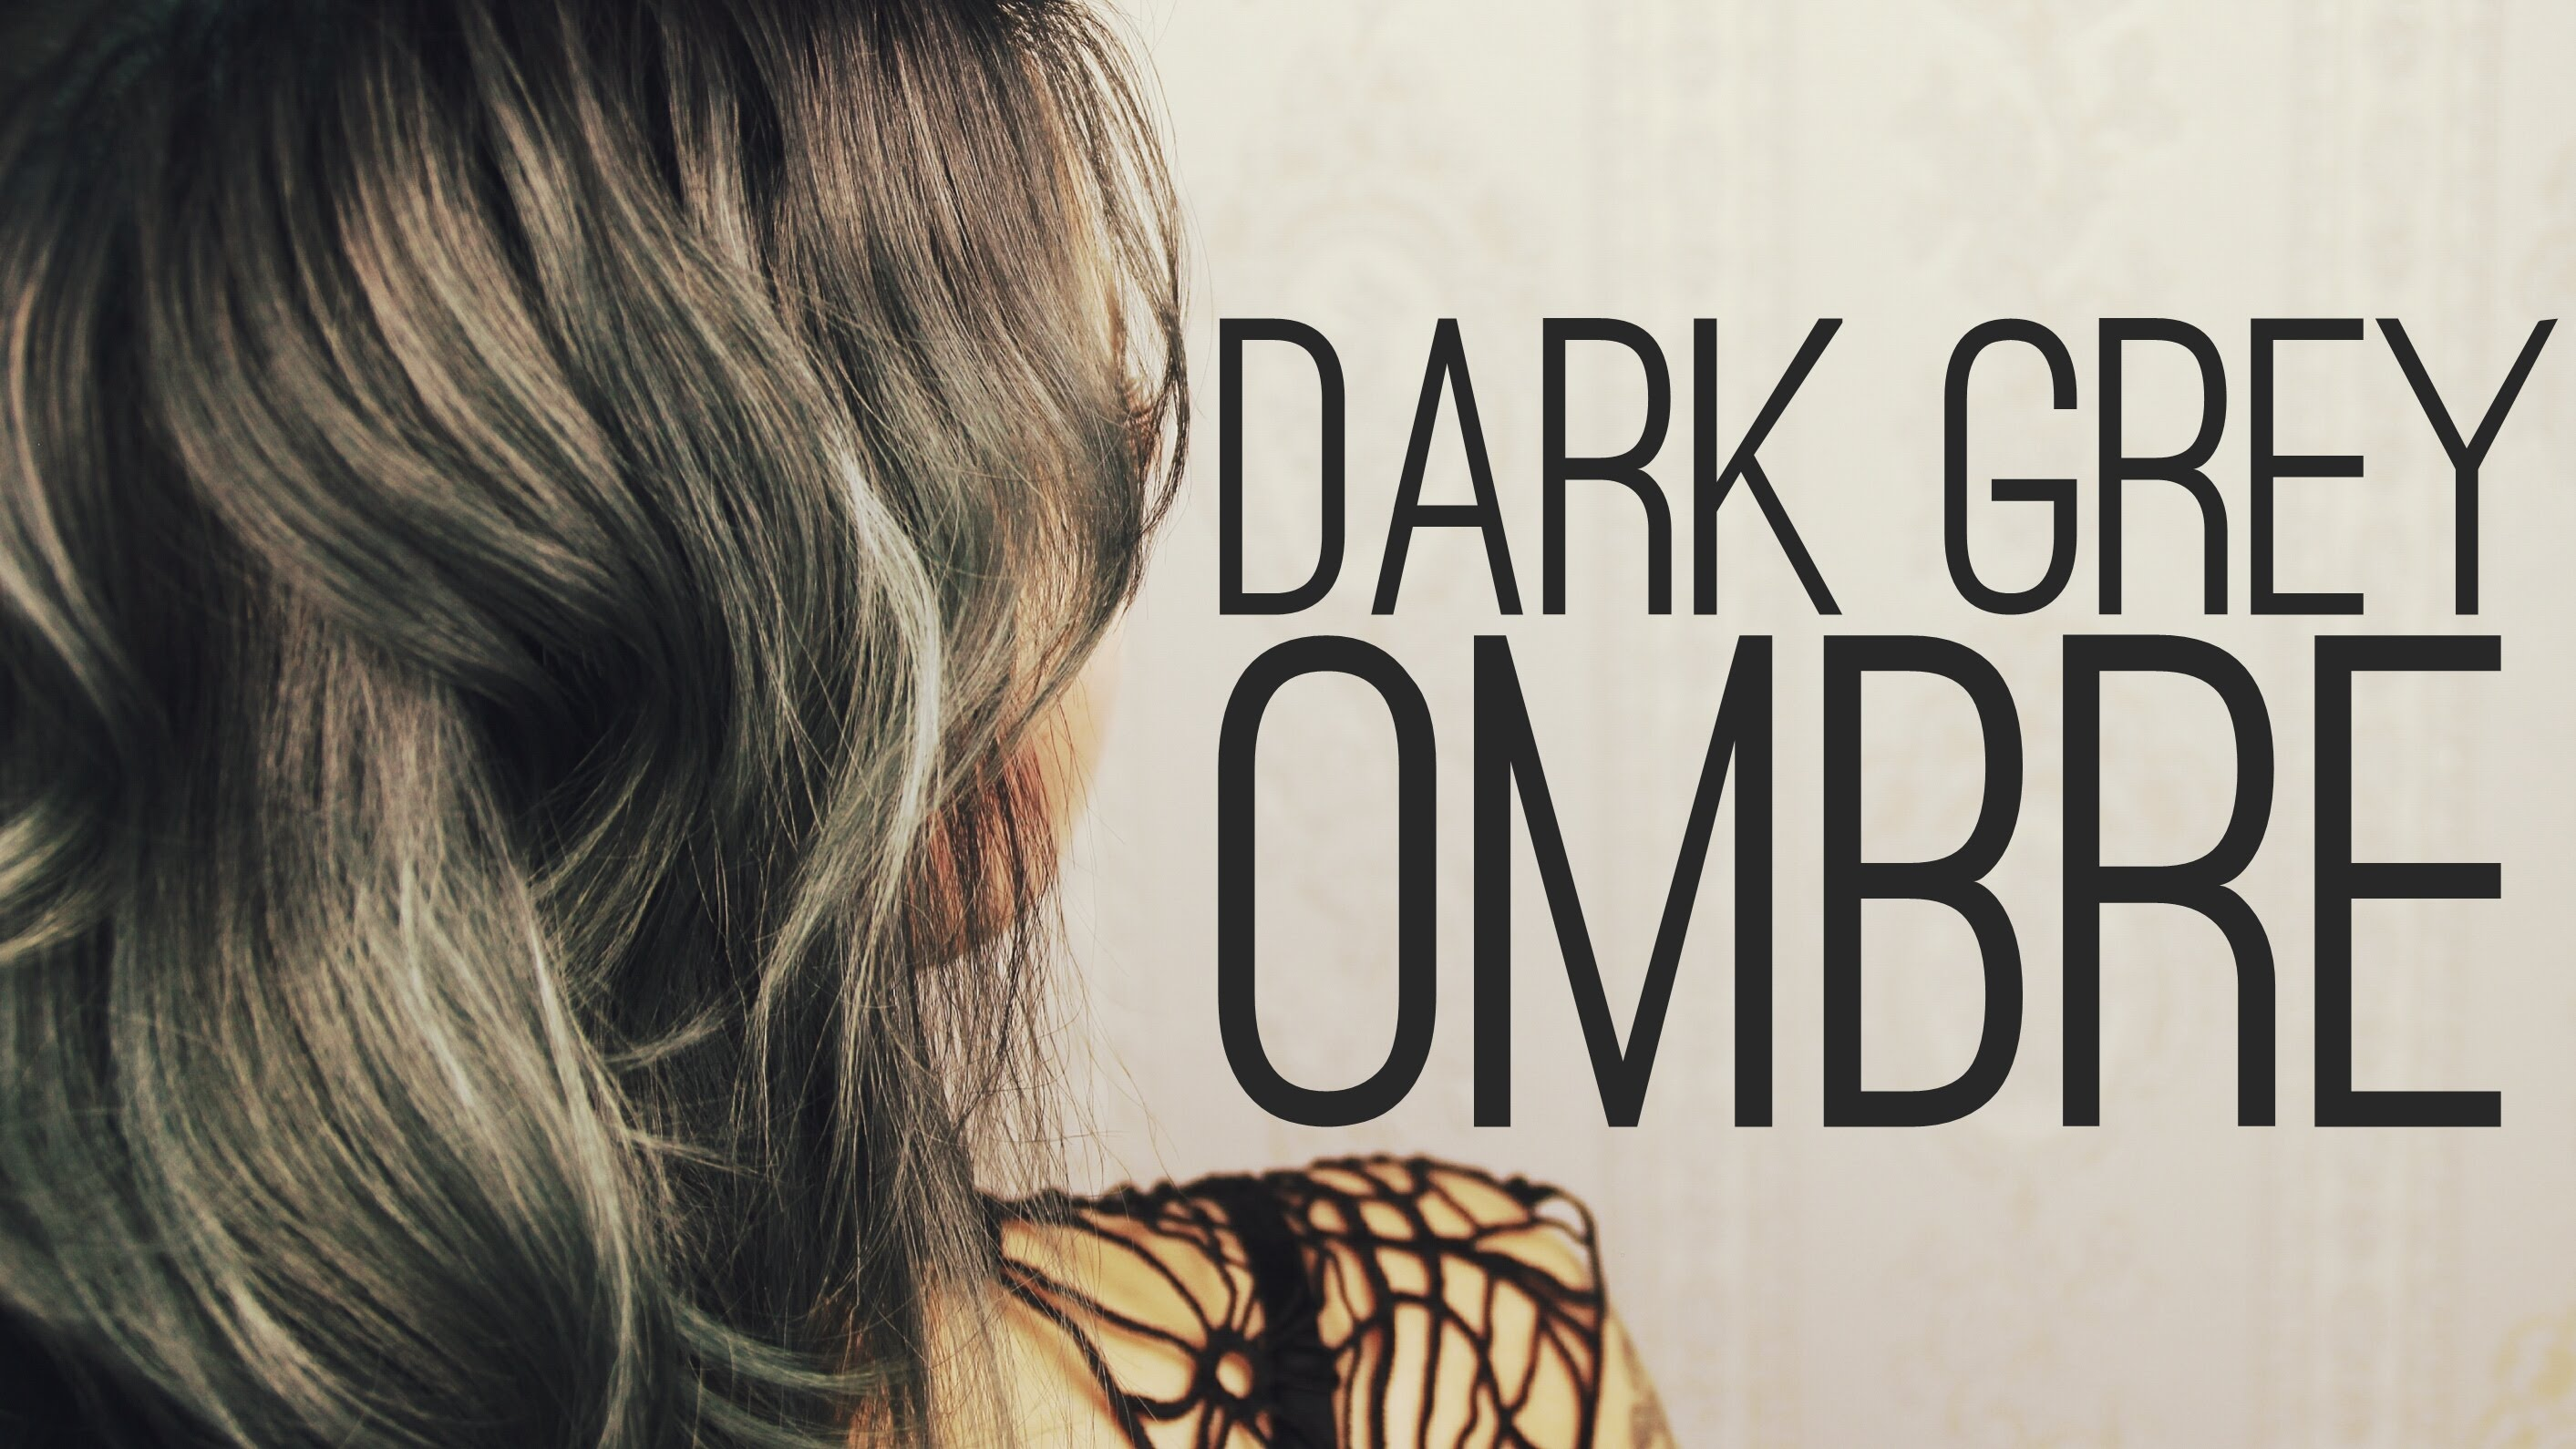 Dark grey ombre hairstyle